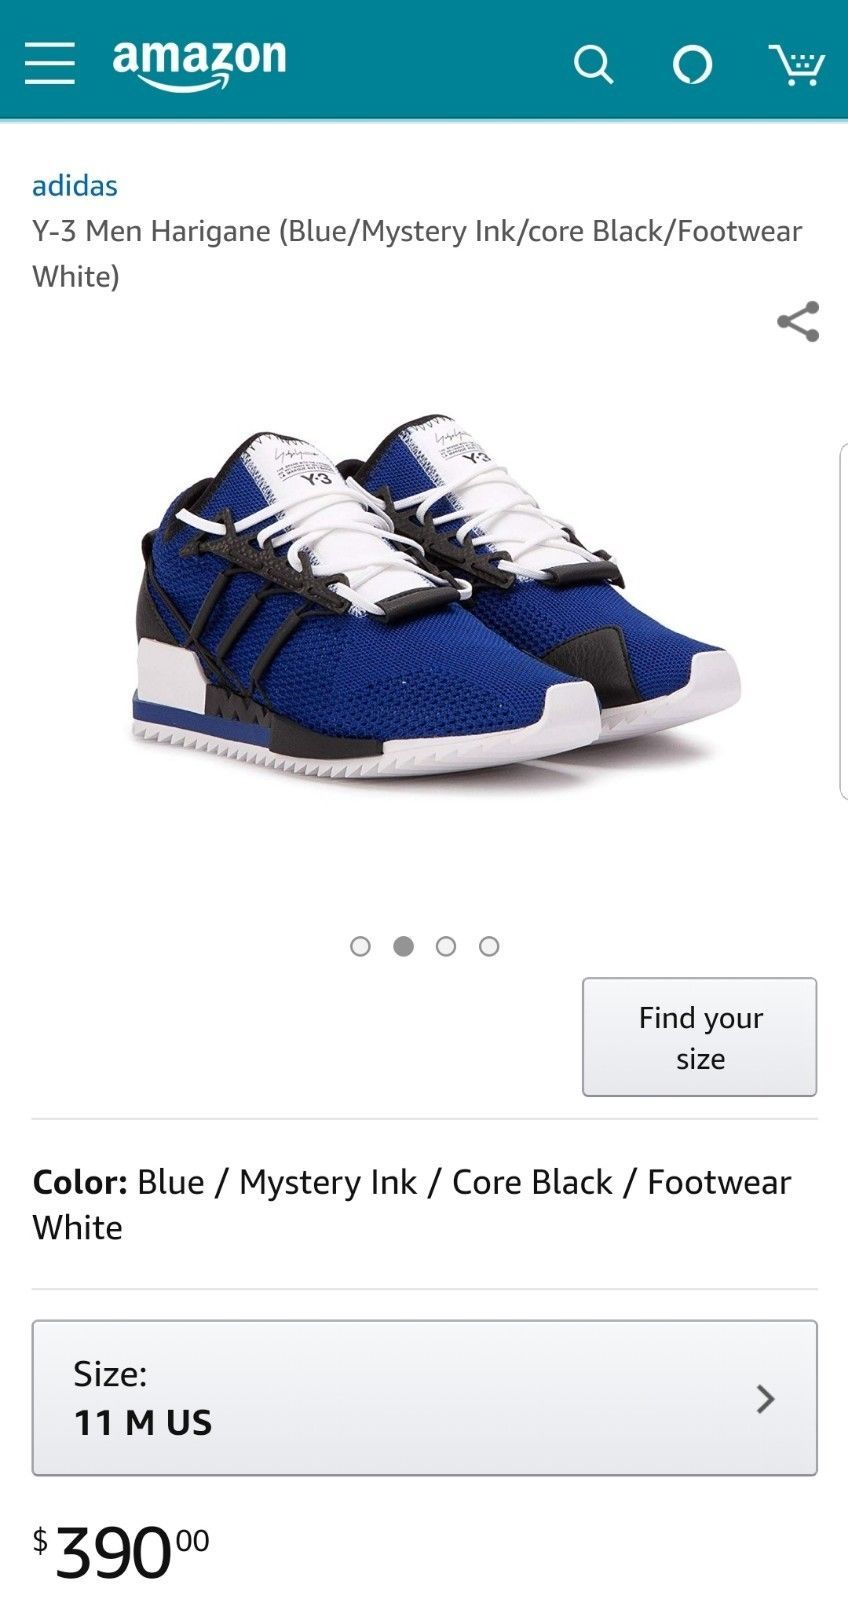 aed0f007c AC7194 Adidas Y-3 Men Harigane blue mystery and 50 similar items. S l1600